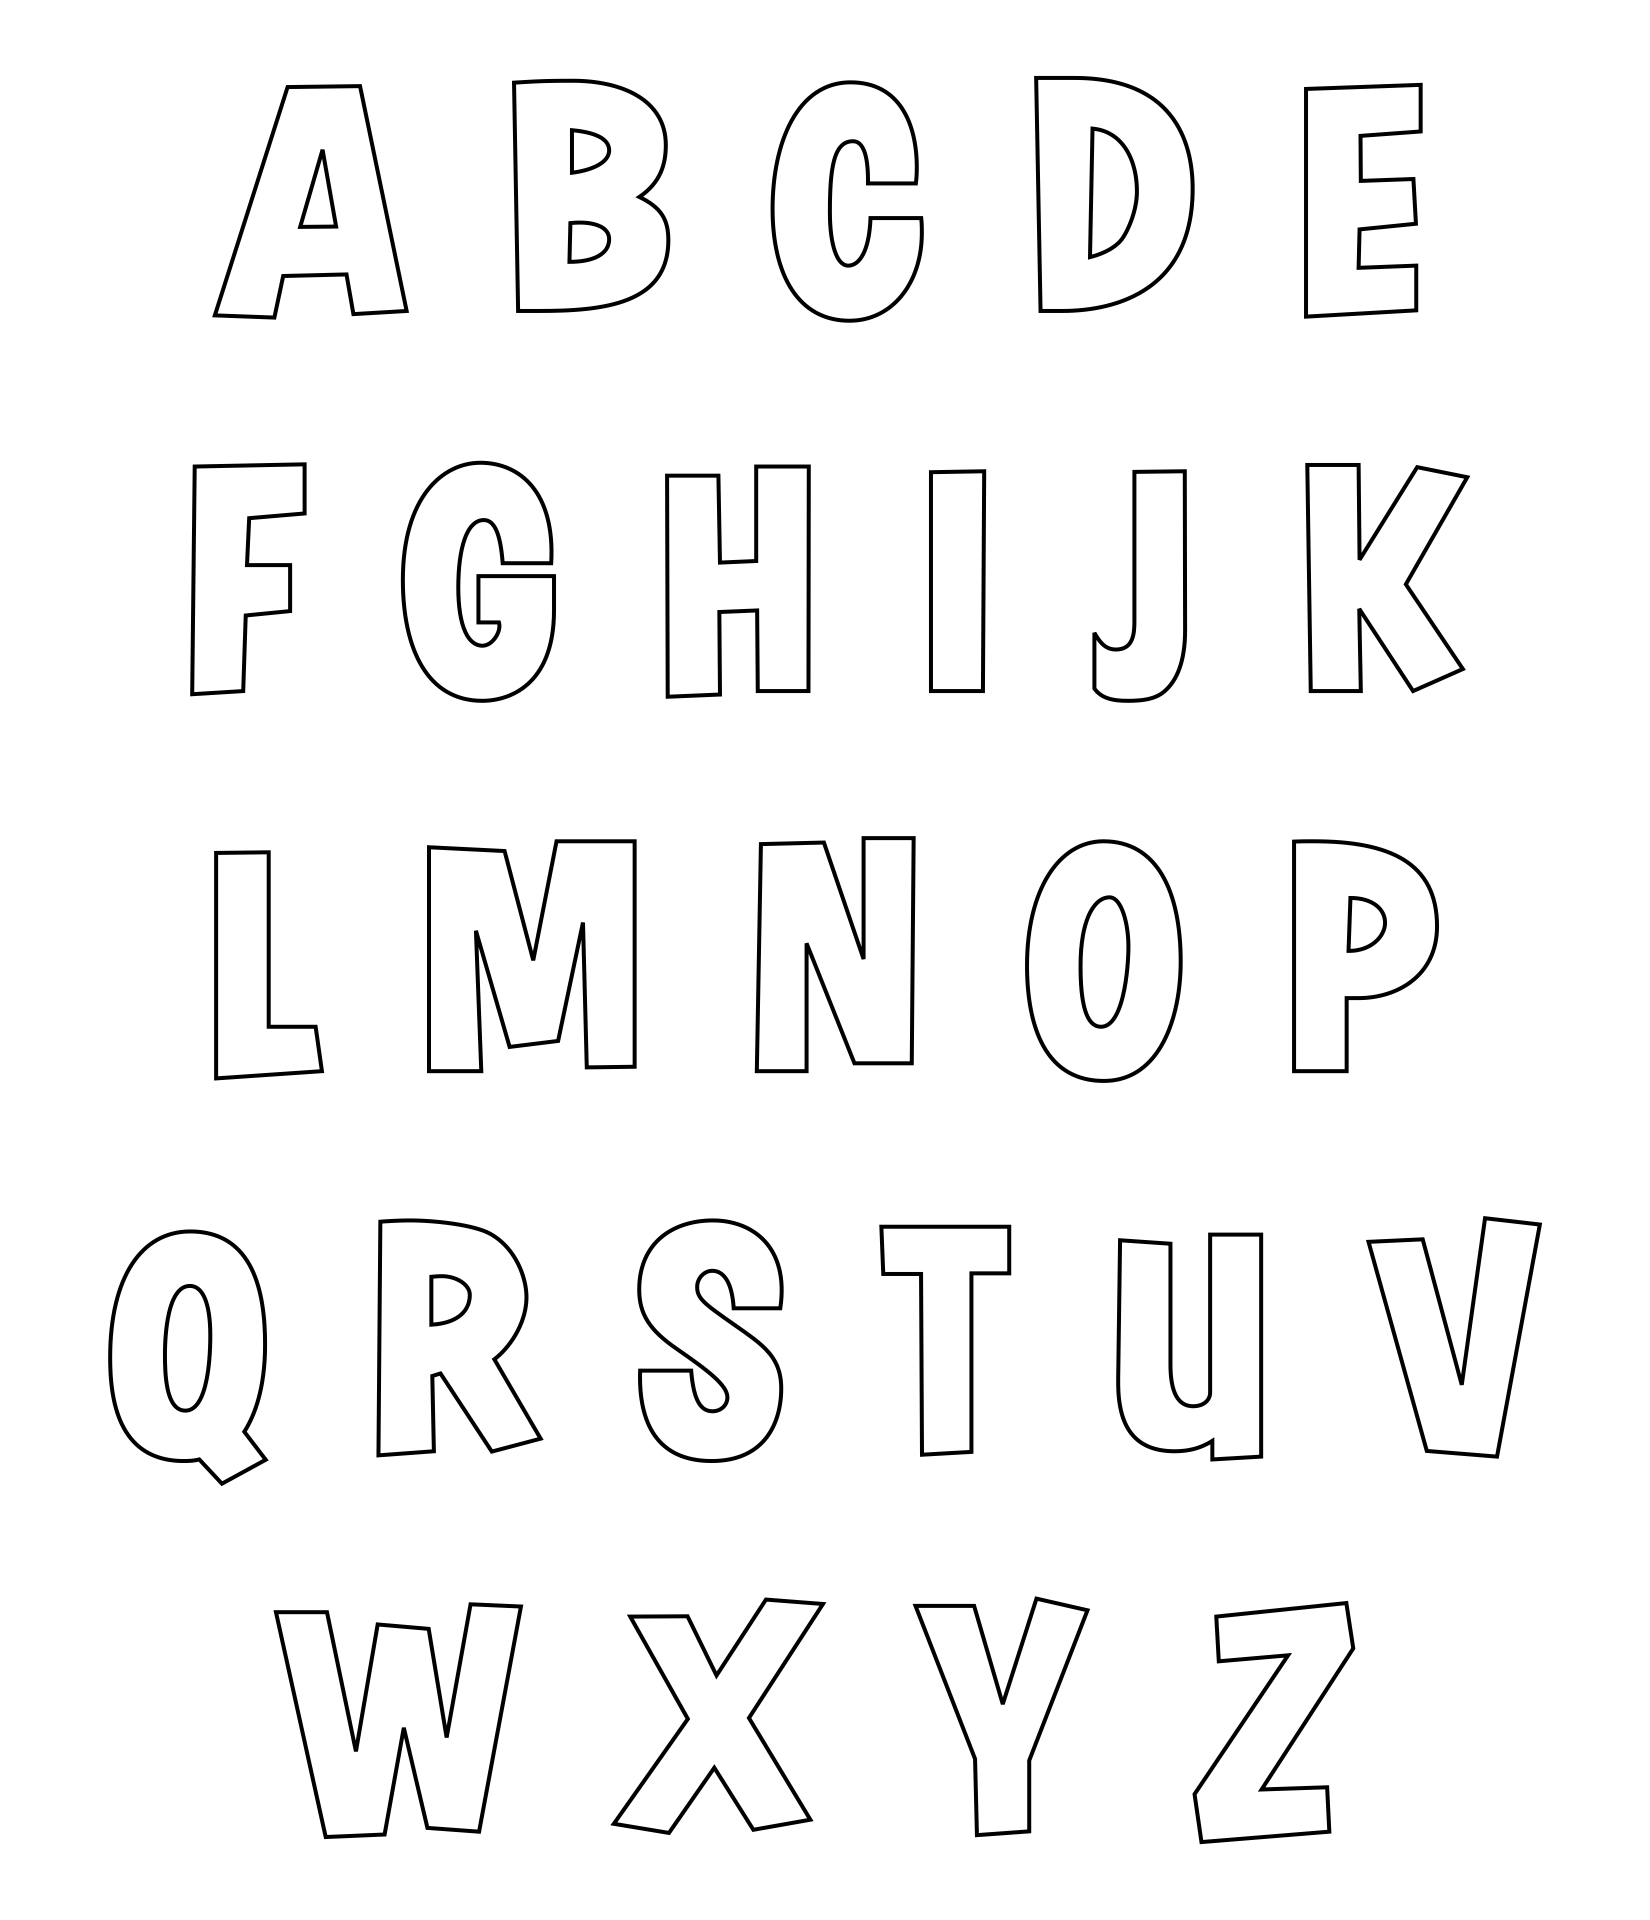 alphabet letters to trace and cut printableletters org 6 best images of printable alphabet letters to cut small 717